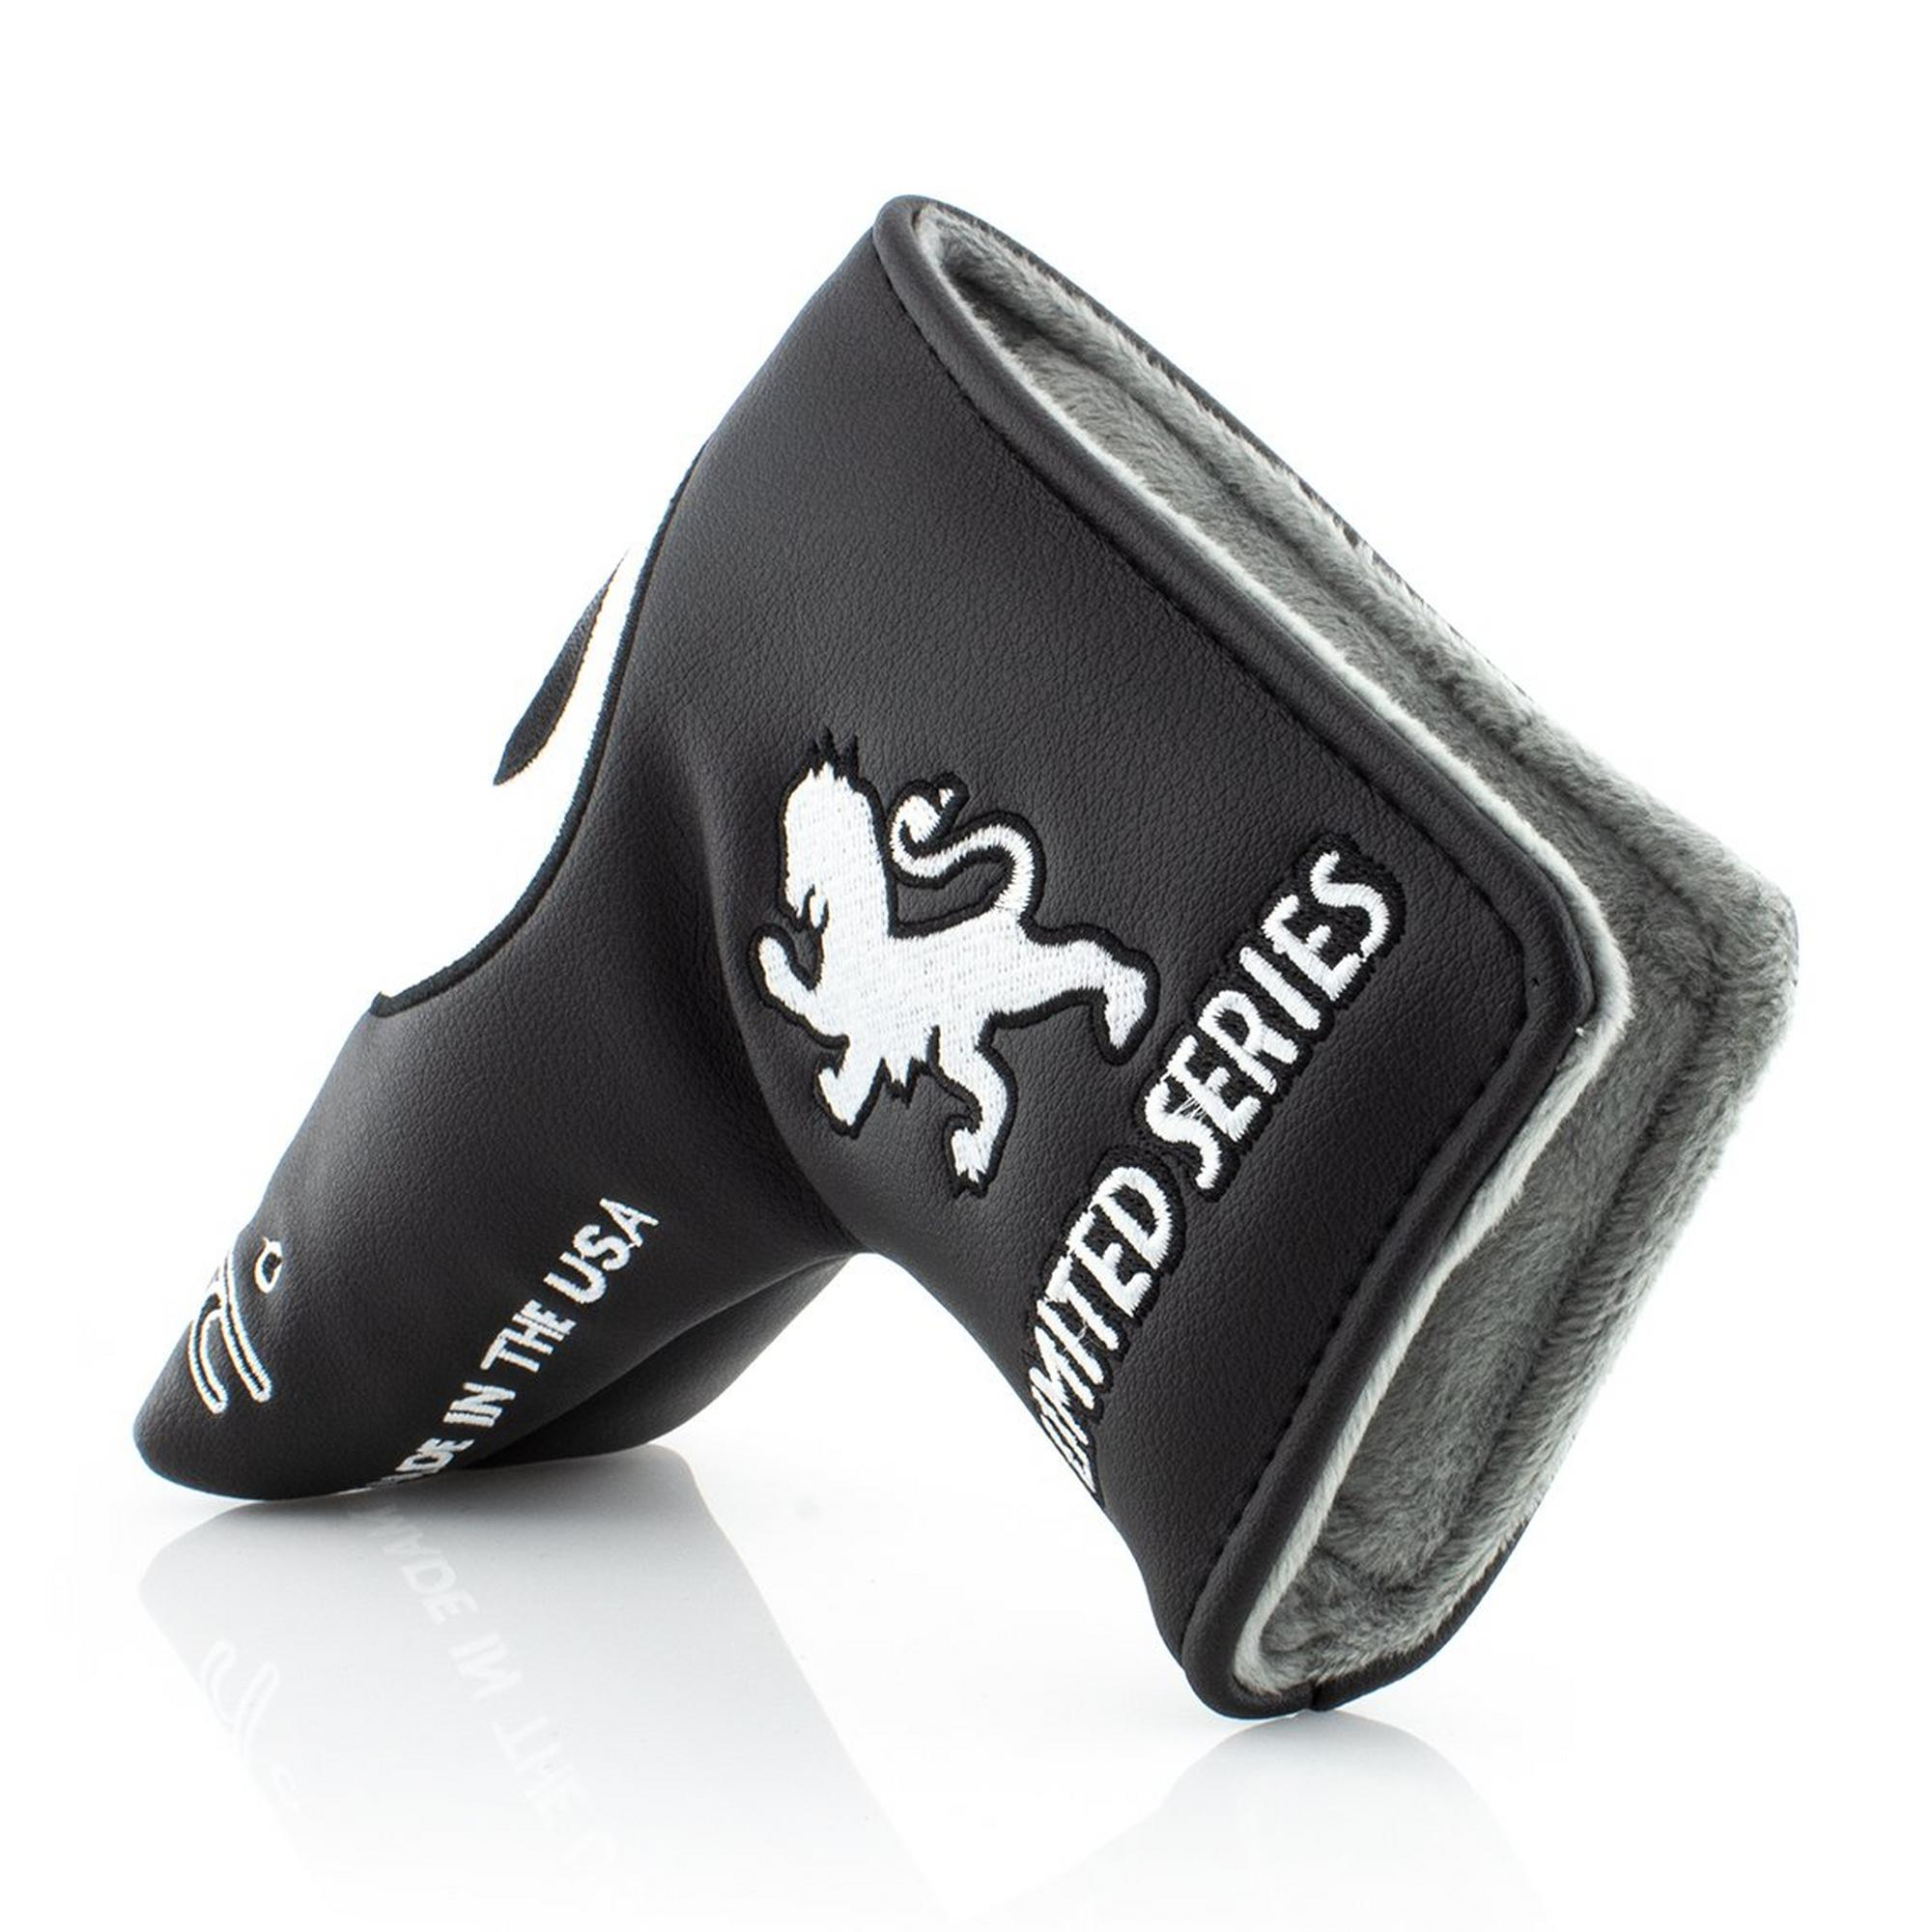 Circle P Headcover - Blade Putter